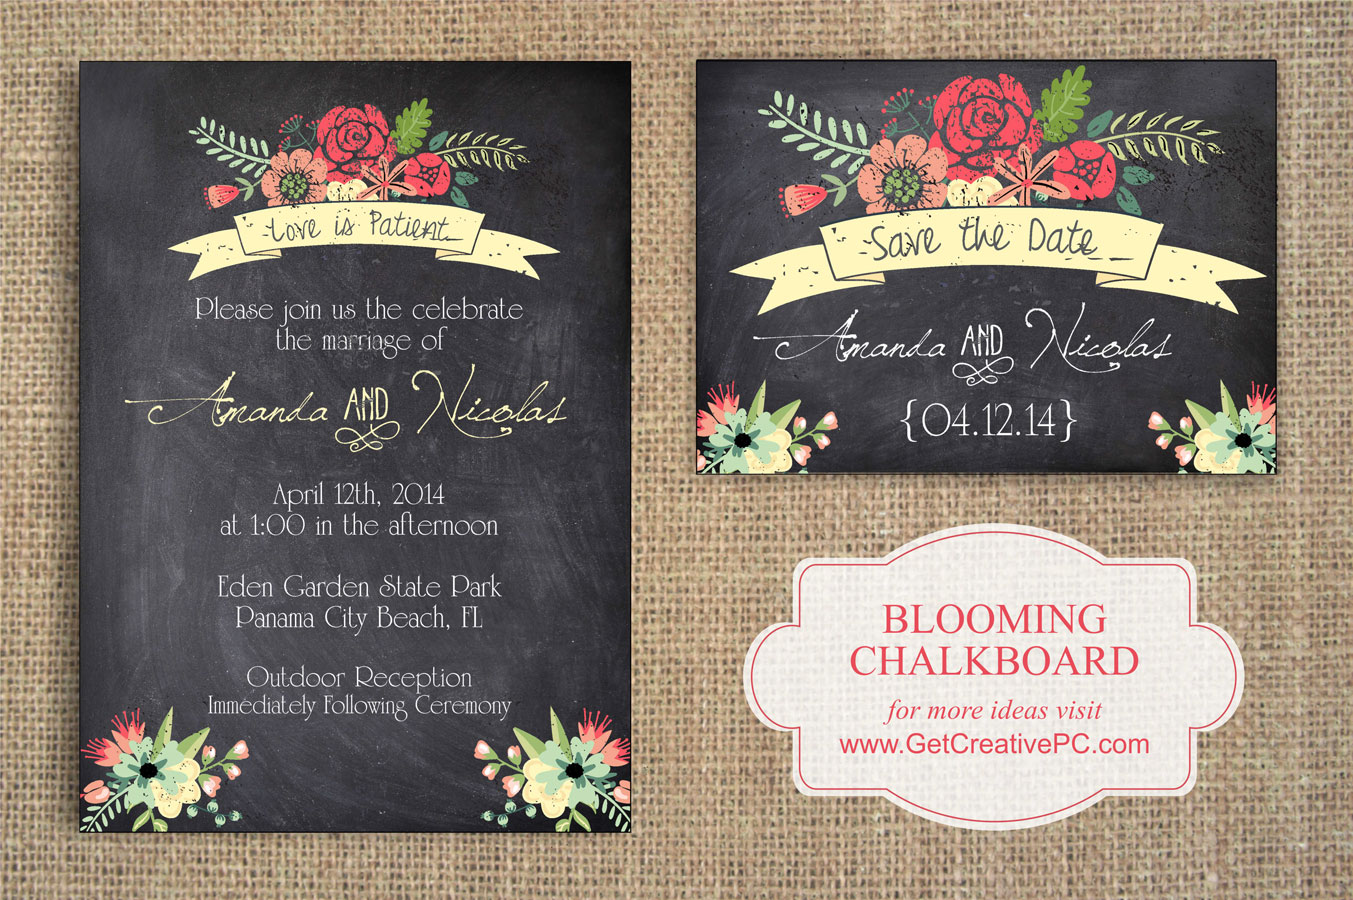 Spring Wedding Invitations Preview  Get Creative Blog